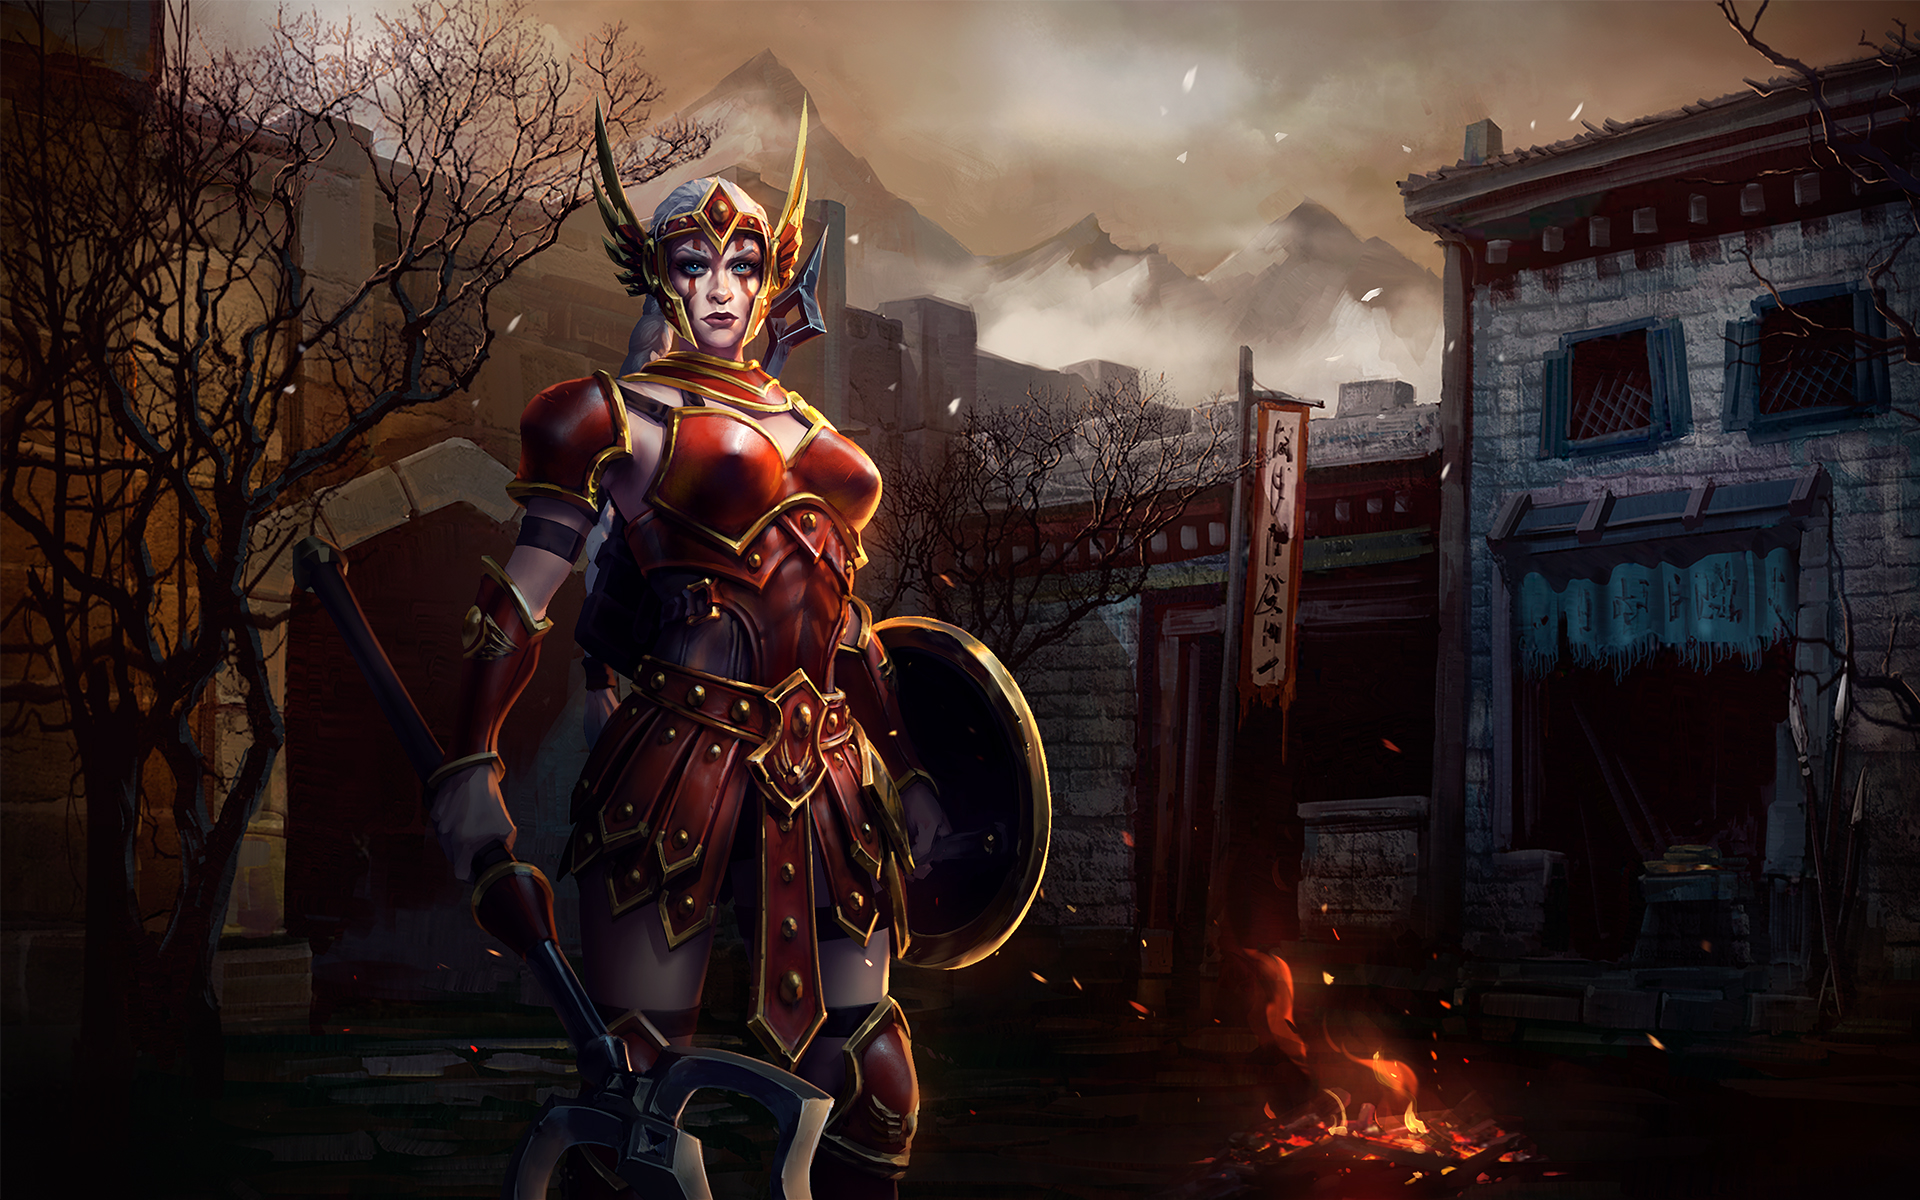 Heroes Of The Storm Wallpaper 027 Cassia Wallpapers Ethereal Games